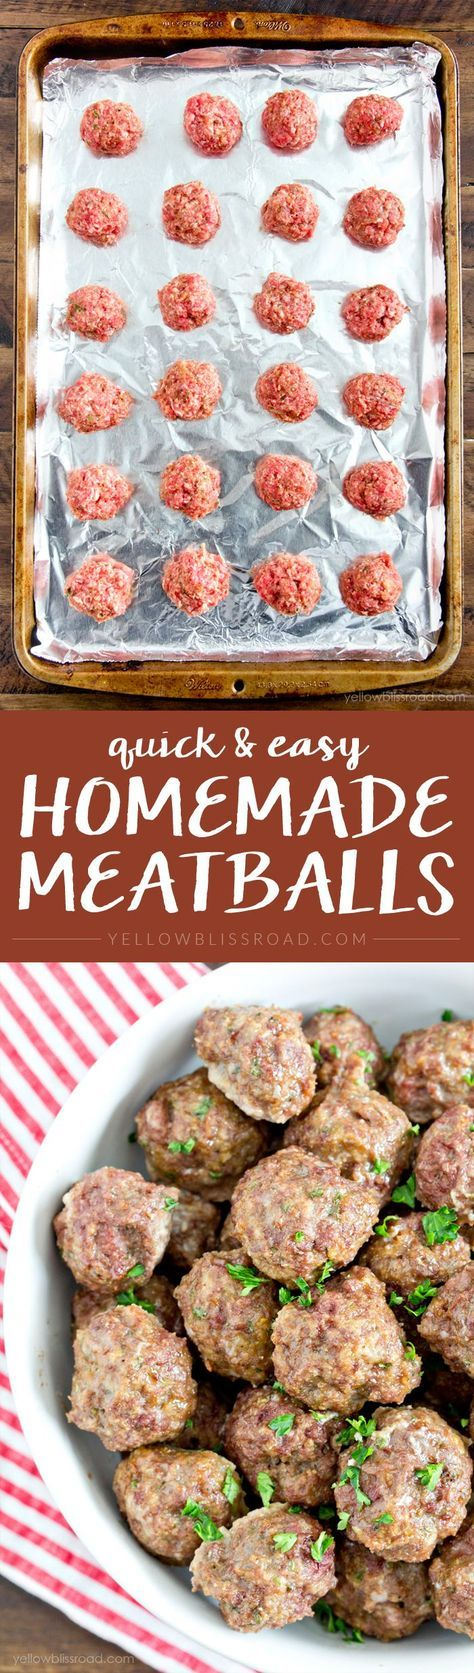 Easy Homemade Meatballs - so much better (and cheaper!) than frozen